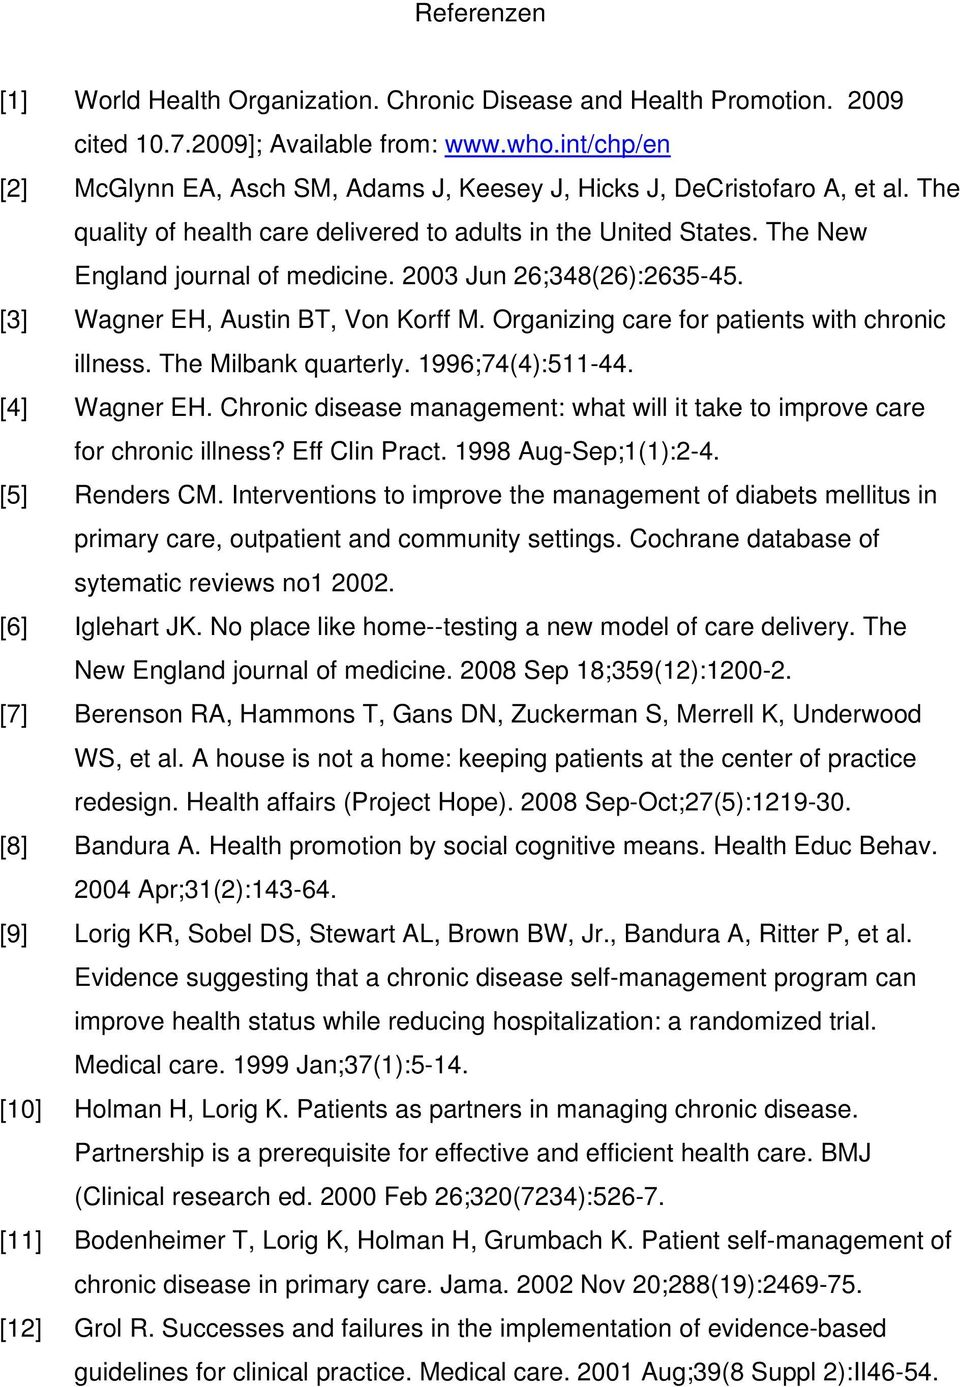 2003 Jun 26;348(26):2635-45. [3] Wagner EH, Austin BT, Von Korff M. Organizing care for patients with chronic illness. The Milbank quarterly. 1996;74(4):511-44. [4] Wagner EH.